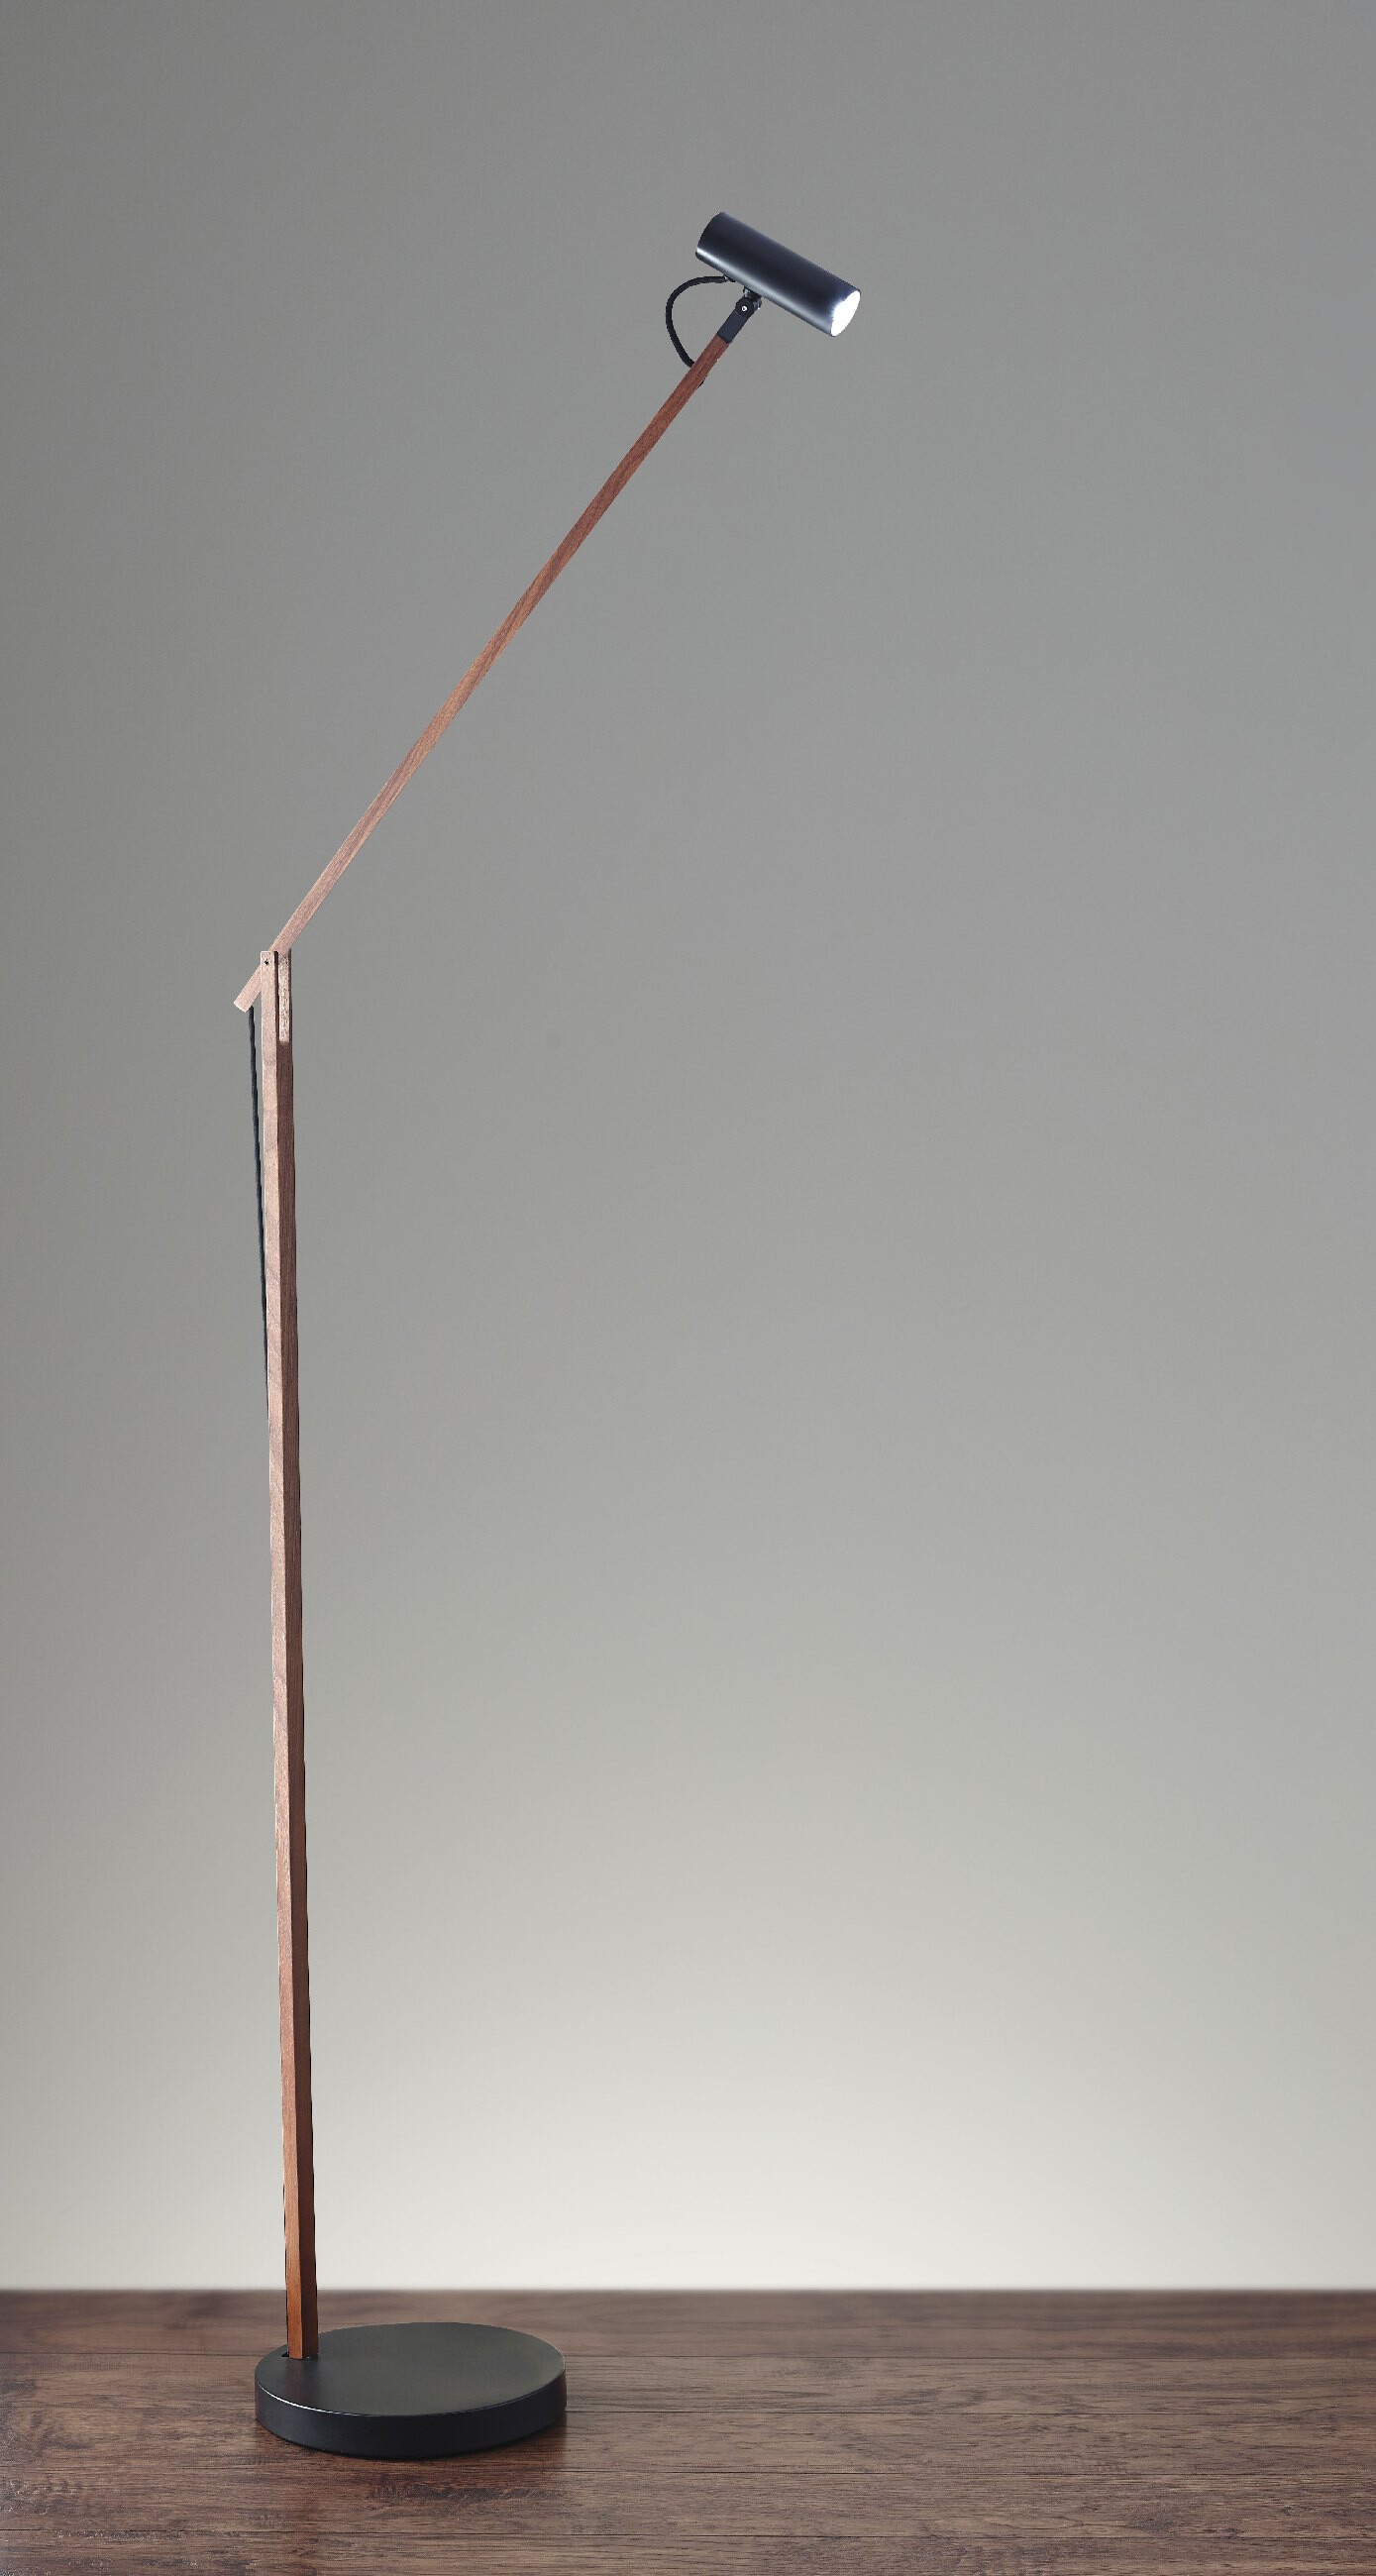 AD9101-15 Crane LED Floor Lamp